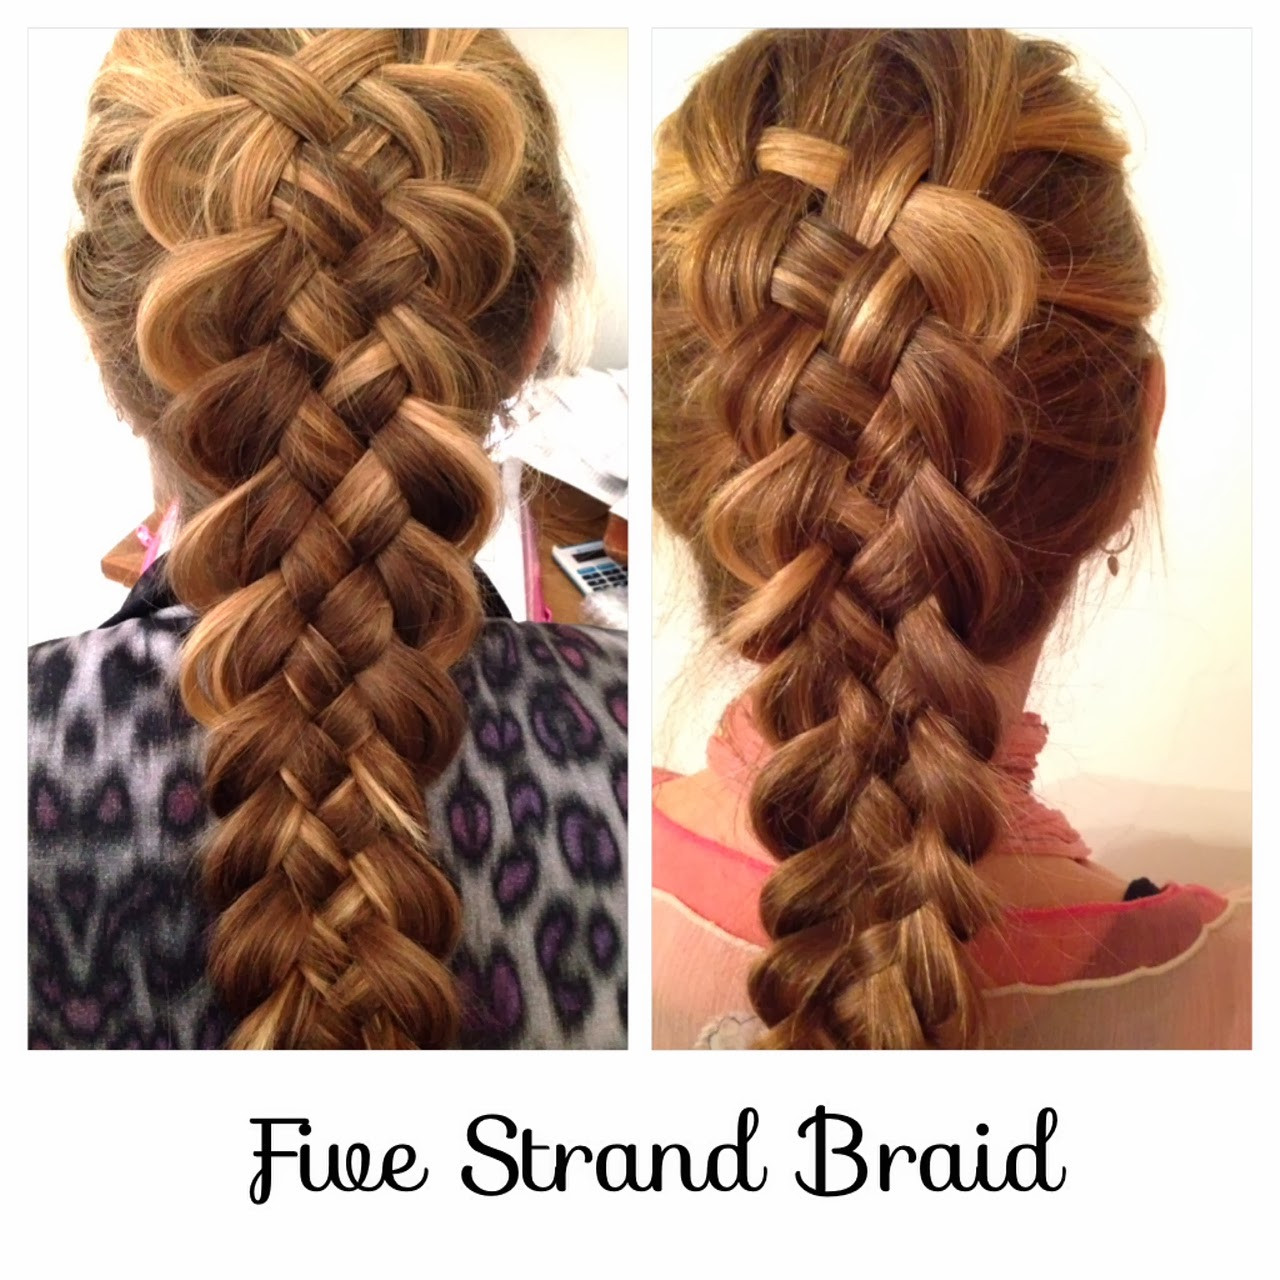 Best ideas about 5 Braids Hairstyle . Save or Pin Hair Styles by Liberty October 2013 Now.